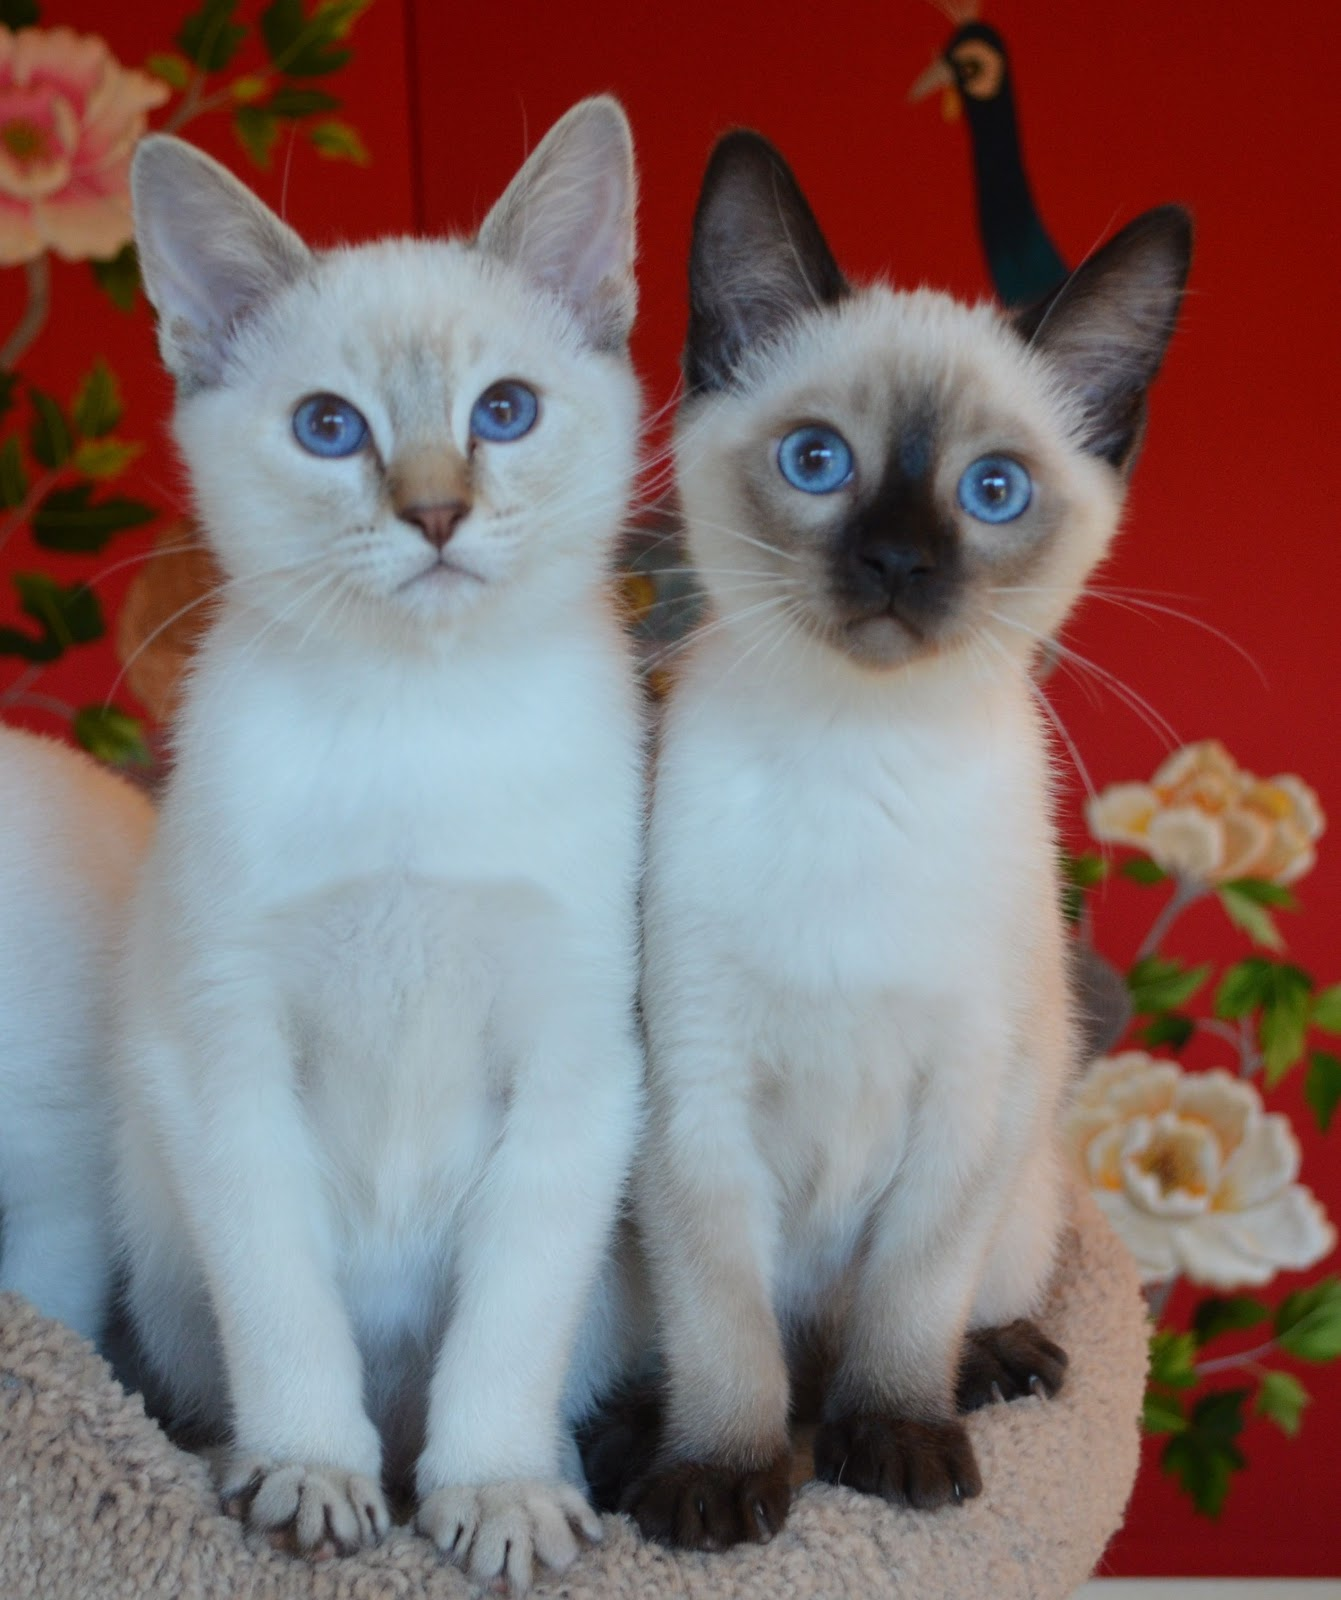 Balinese kittens now available for sale and bringing joy your way ...